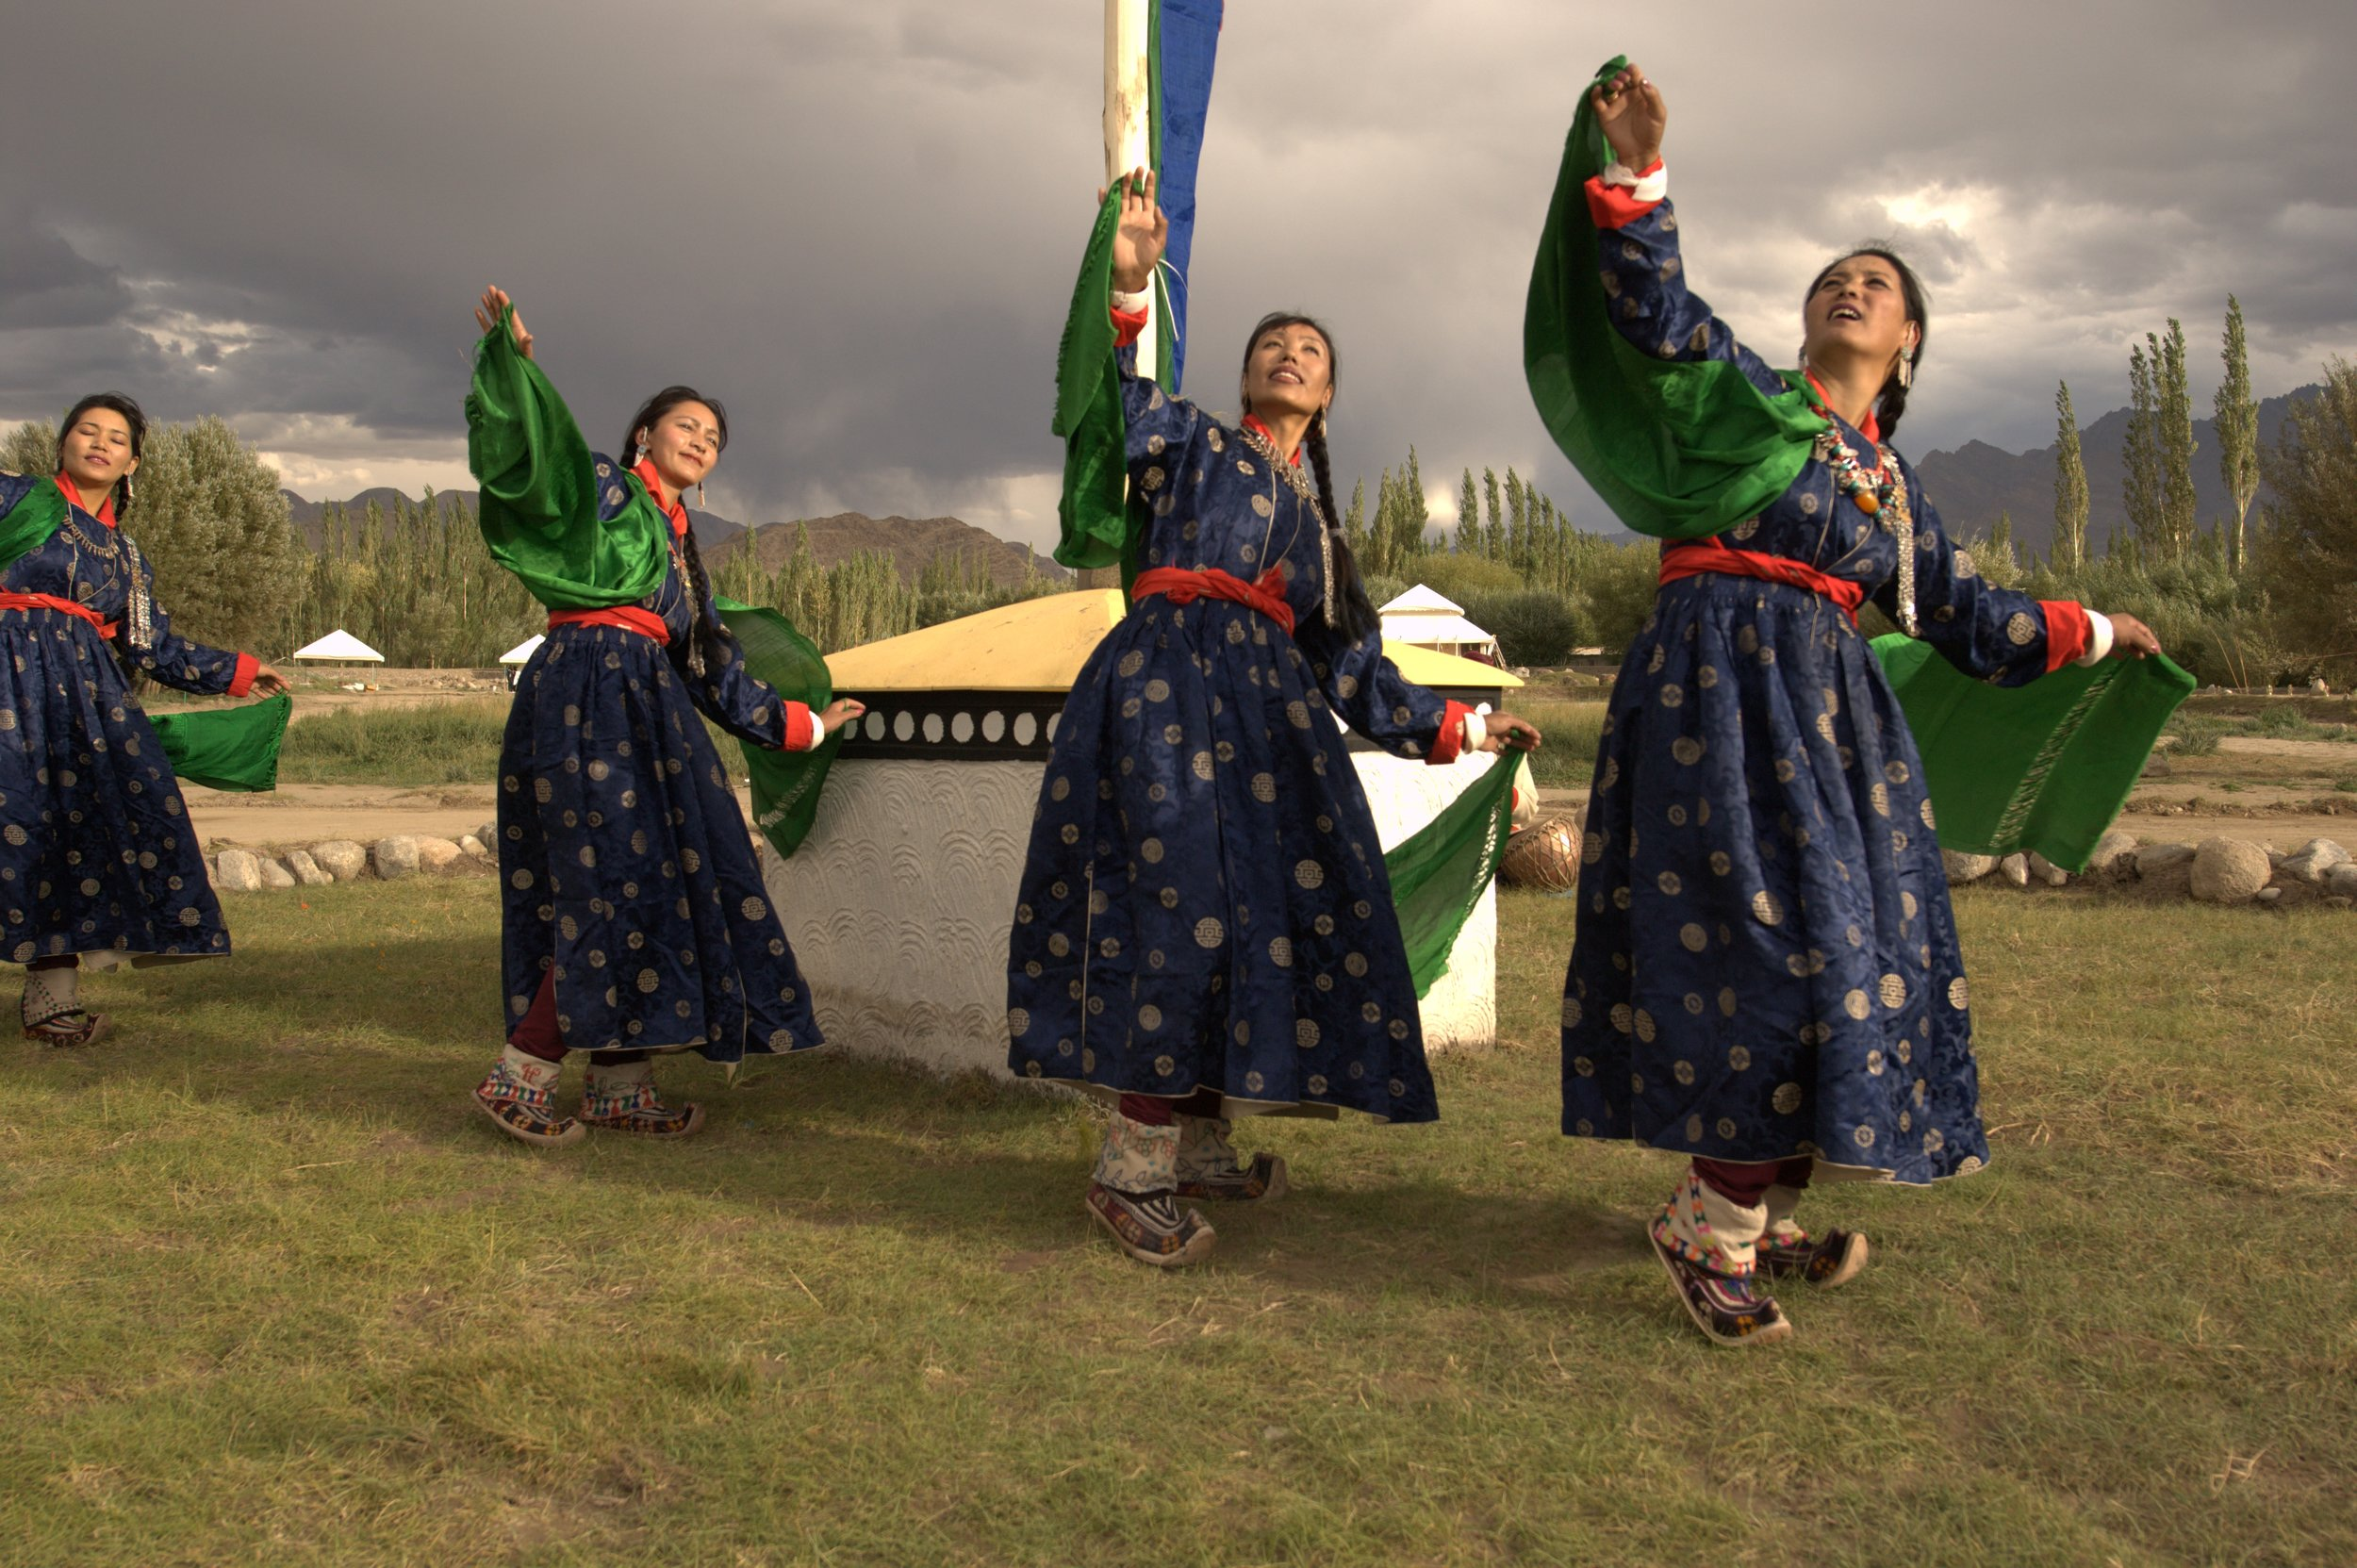 local-folk-dance-01_highres.jpg